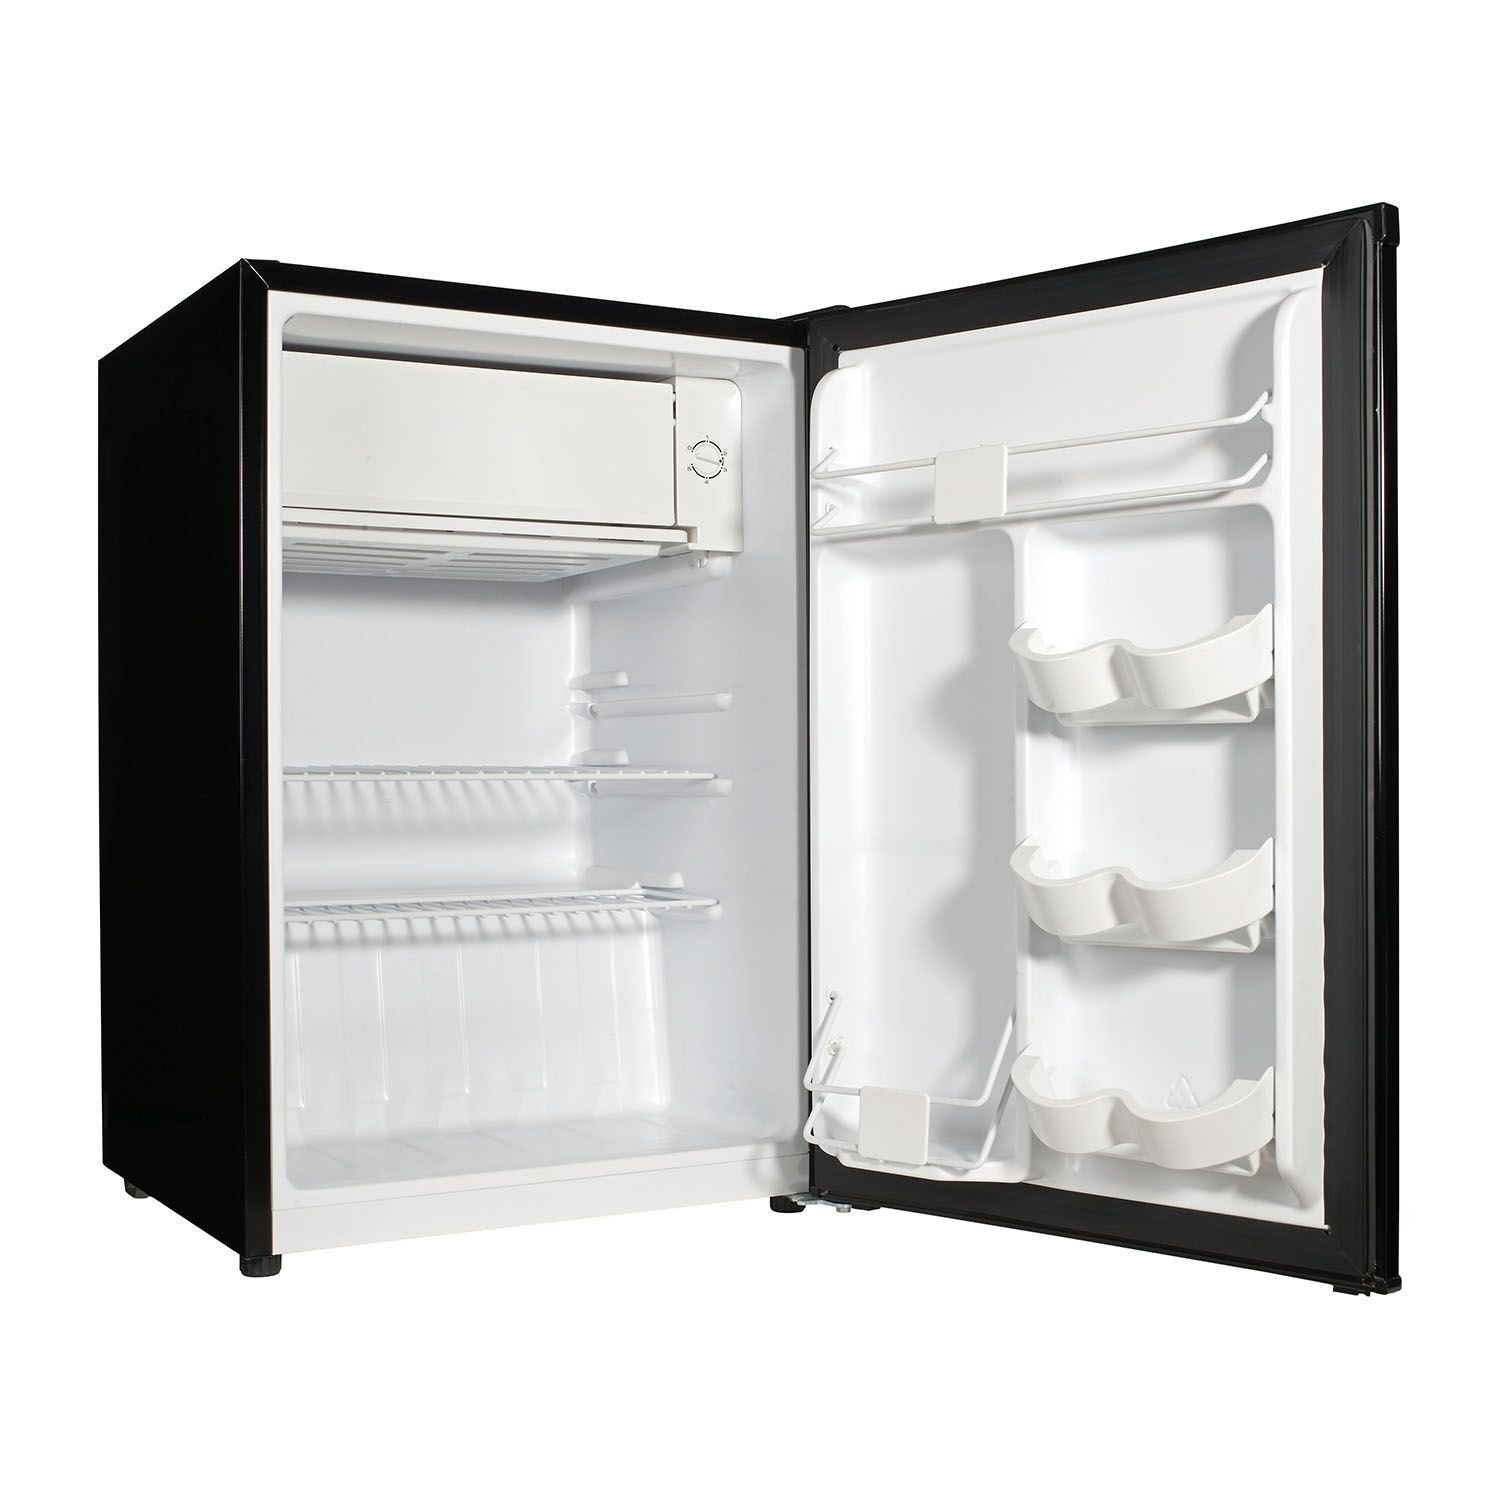 GZ 2.7 cubic foot stainless look compact dorm refrigerator